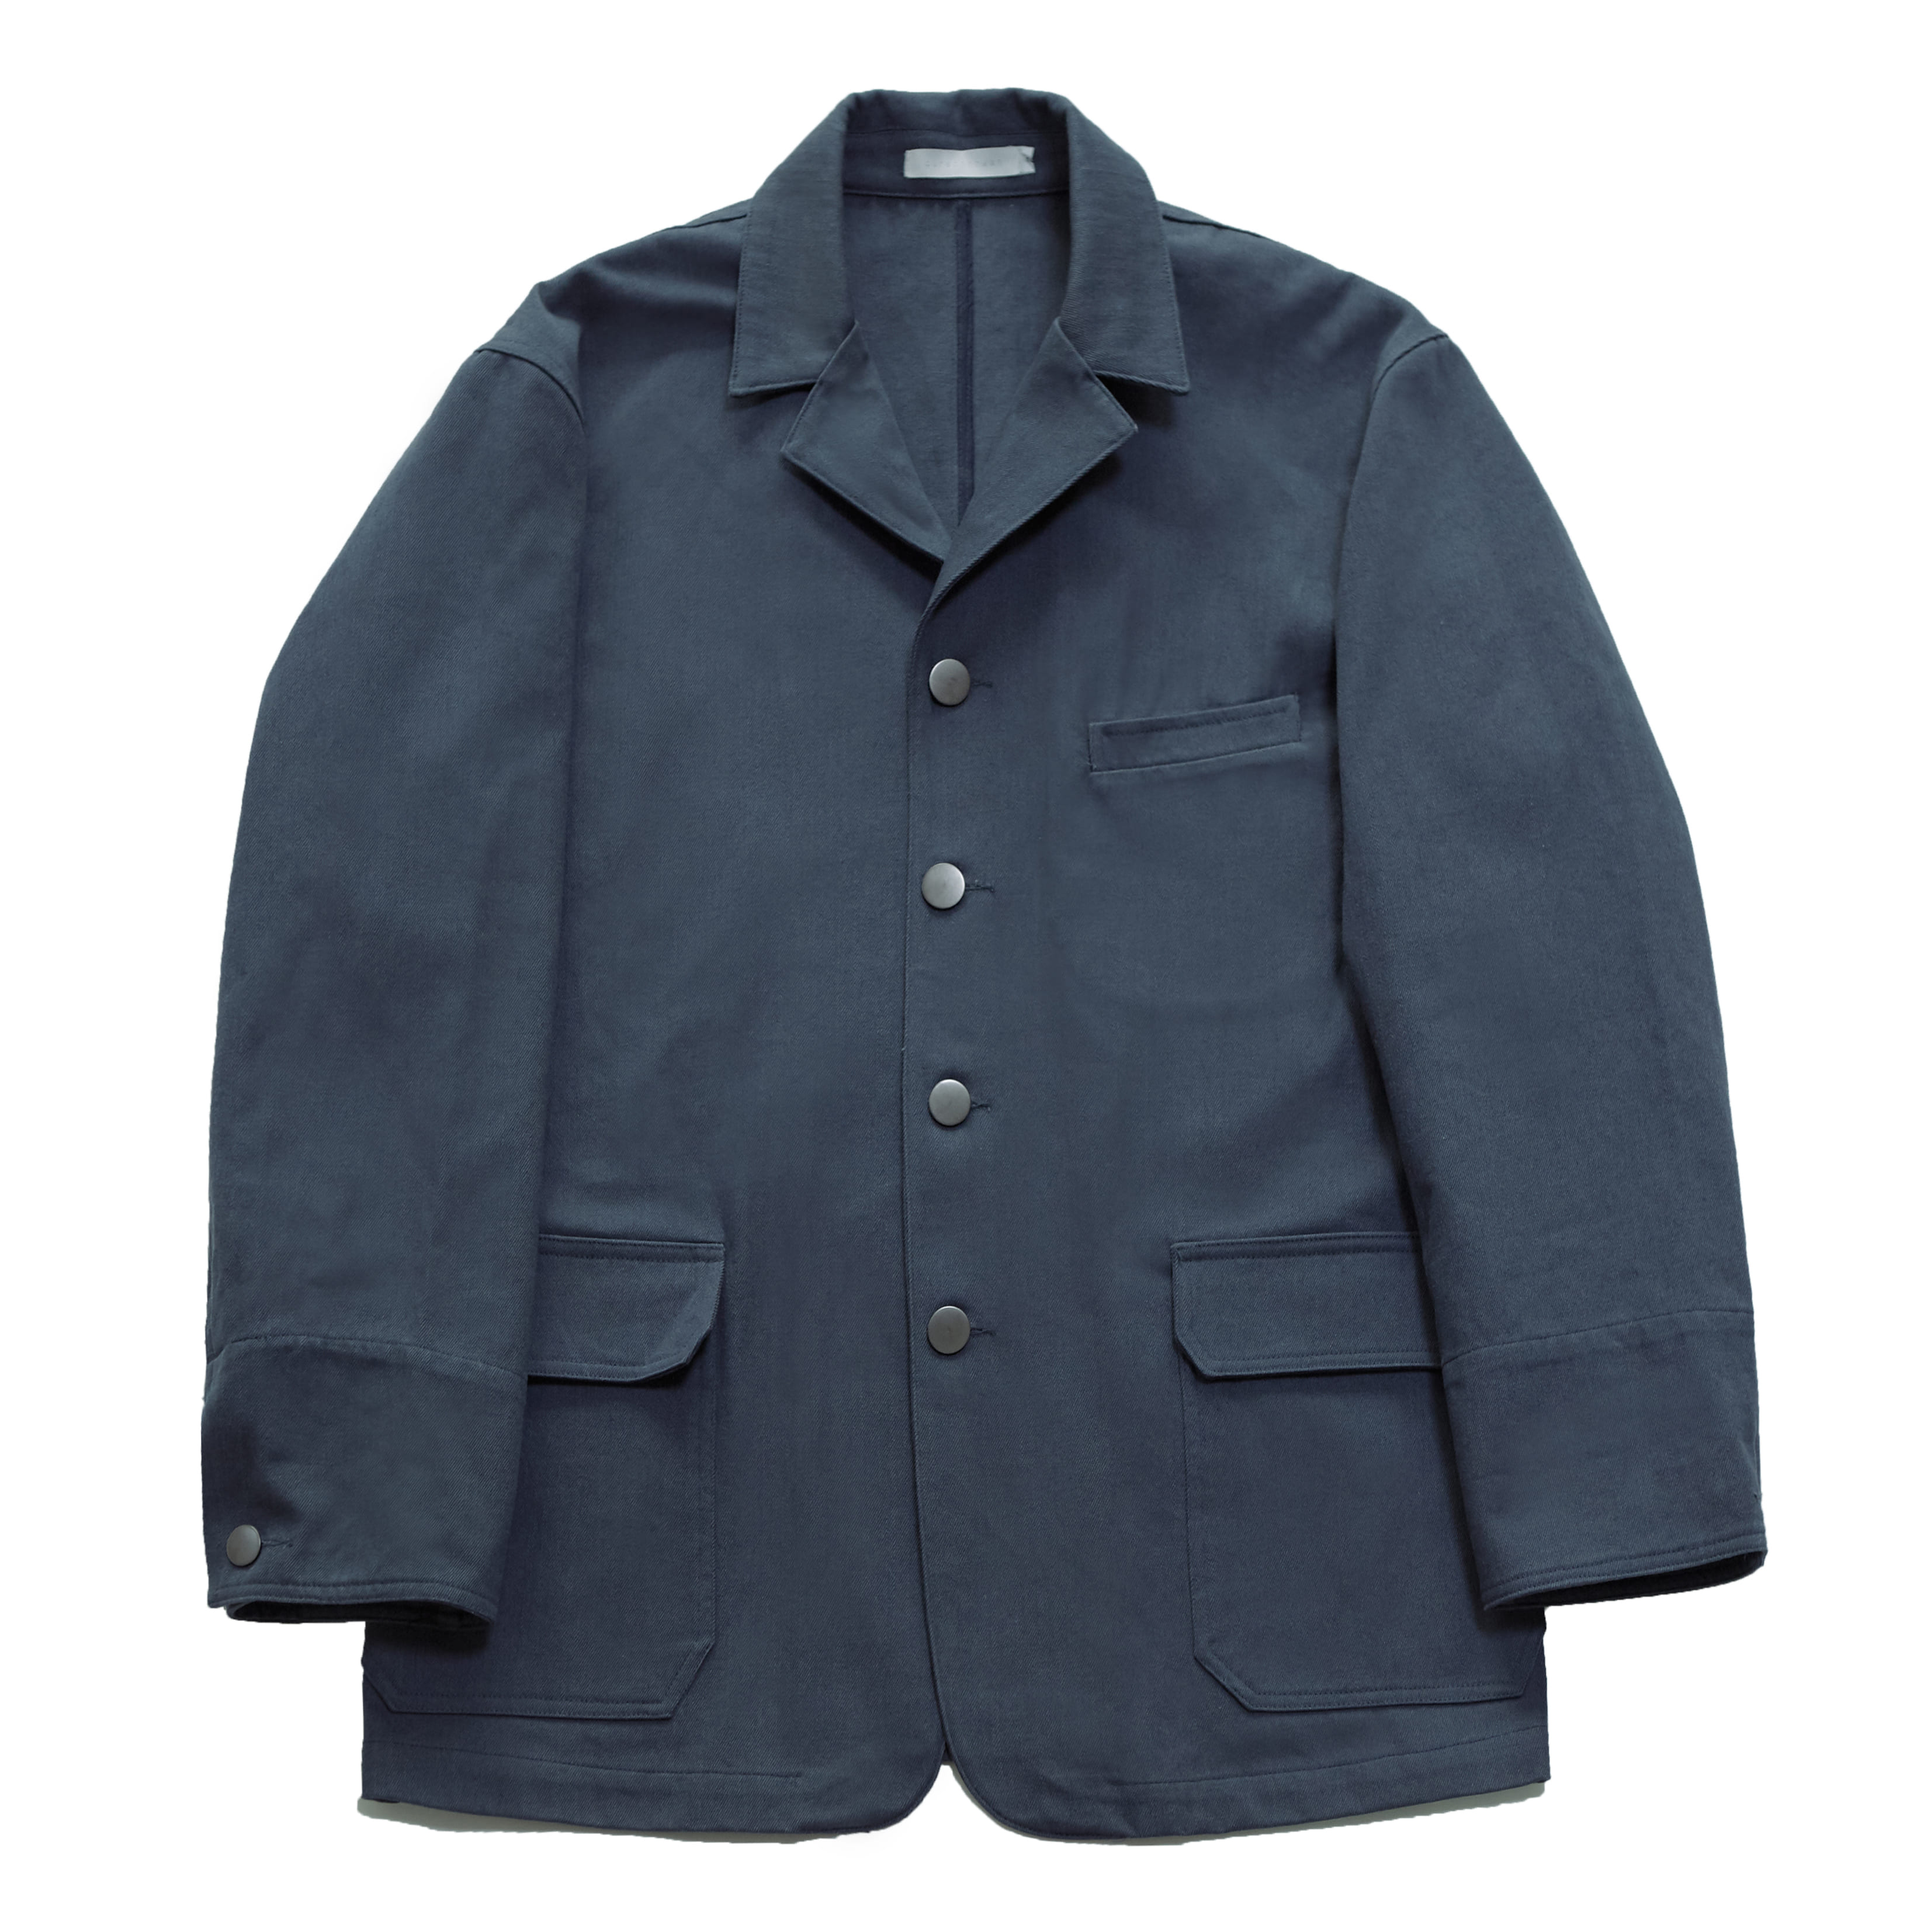 tailored jacket (navy)